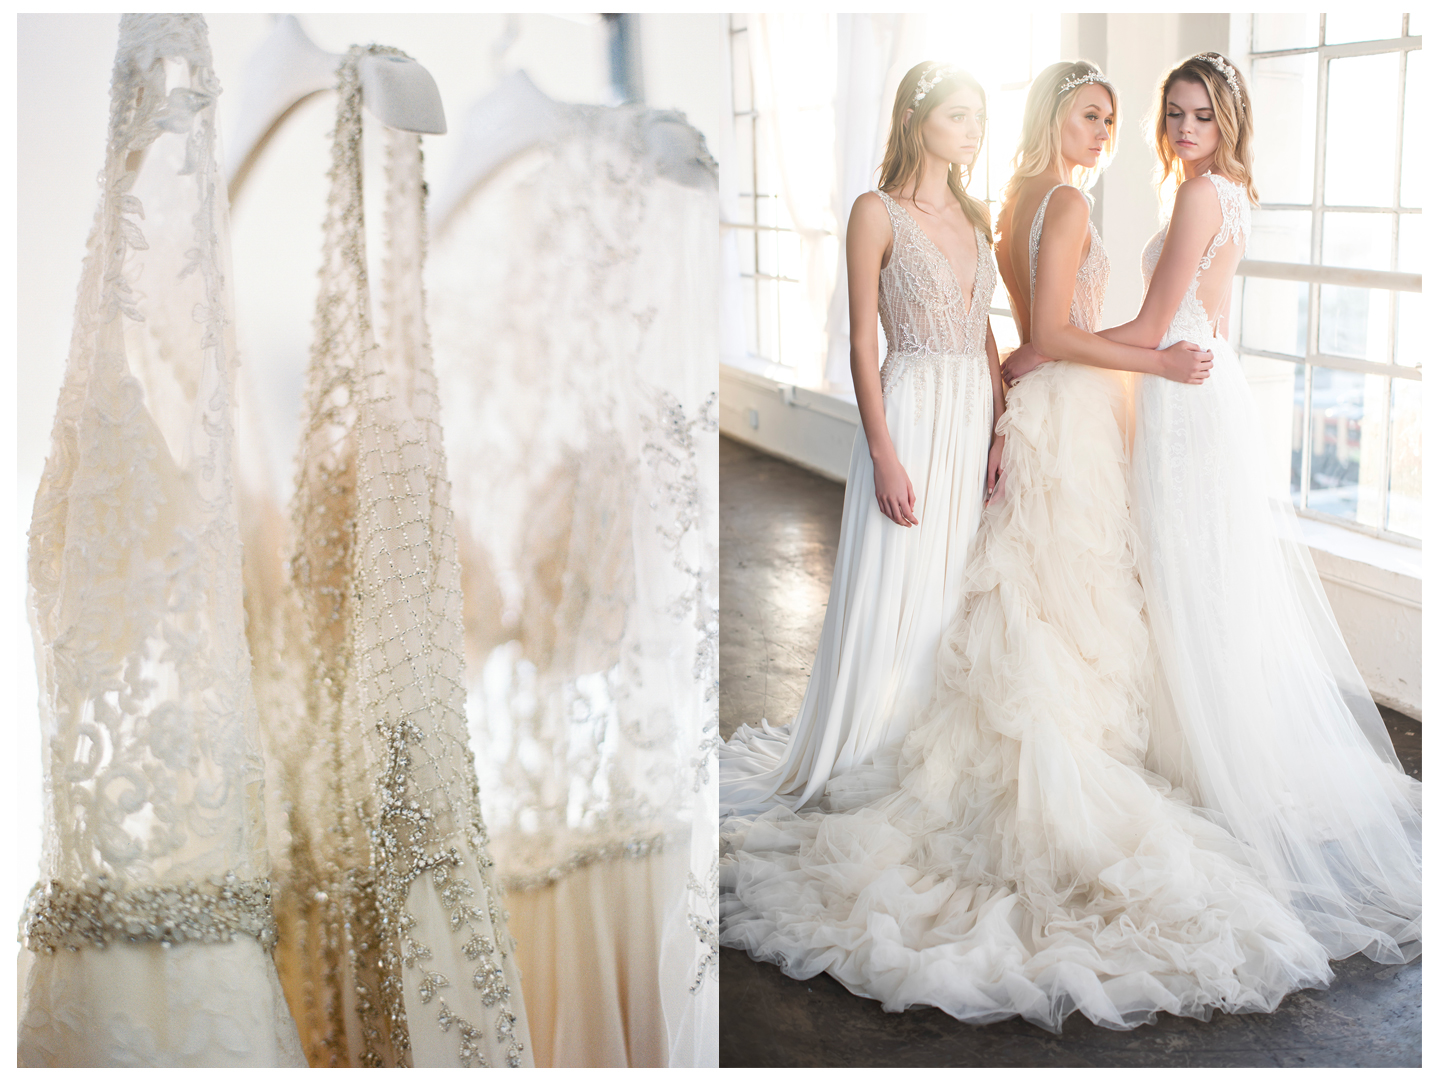 World Renowned Bridal Company Seeks To Expand Their Brand